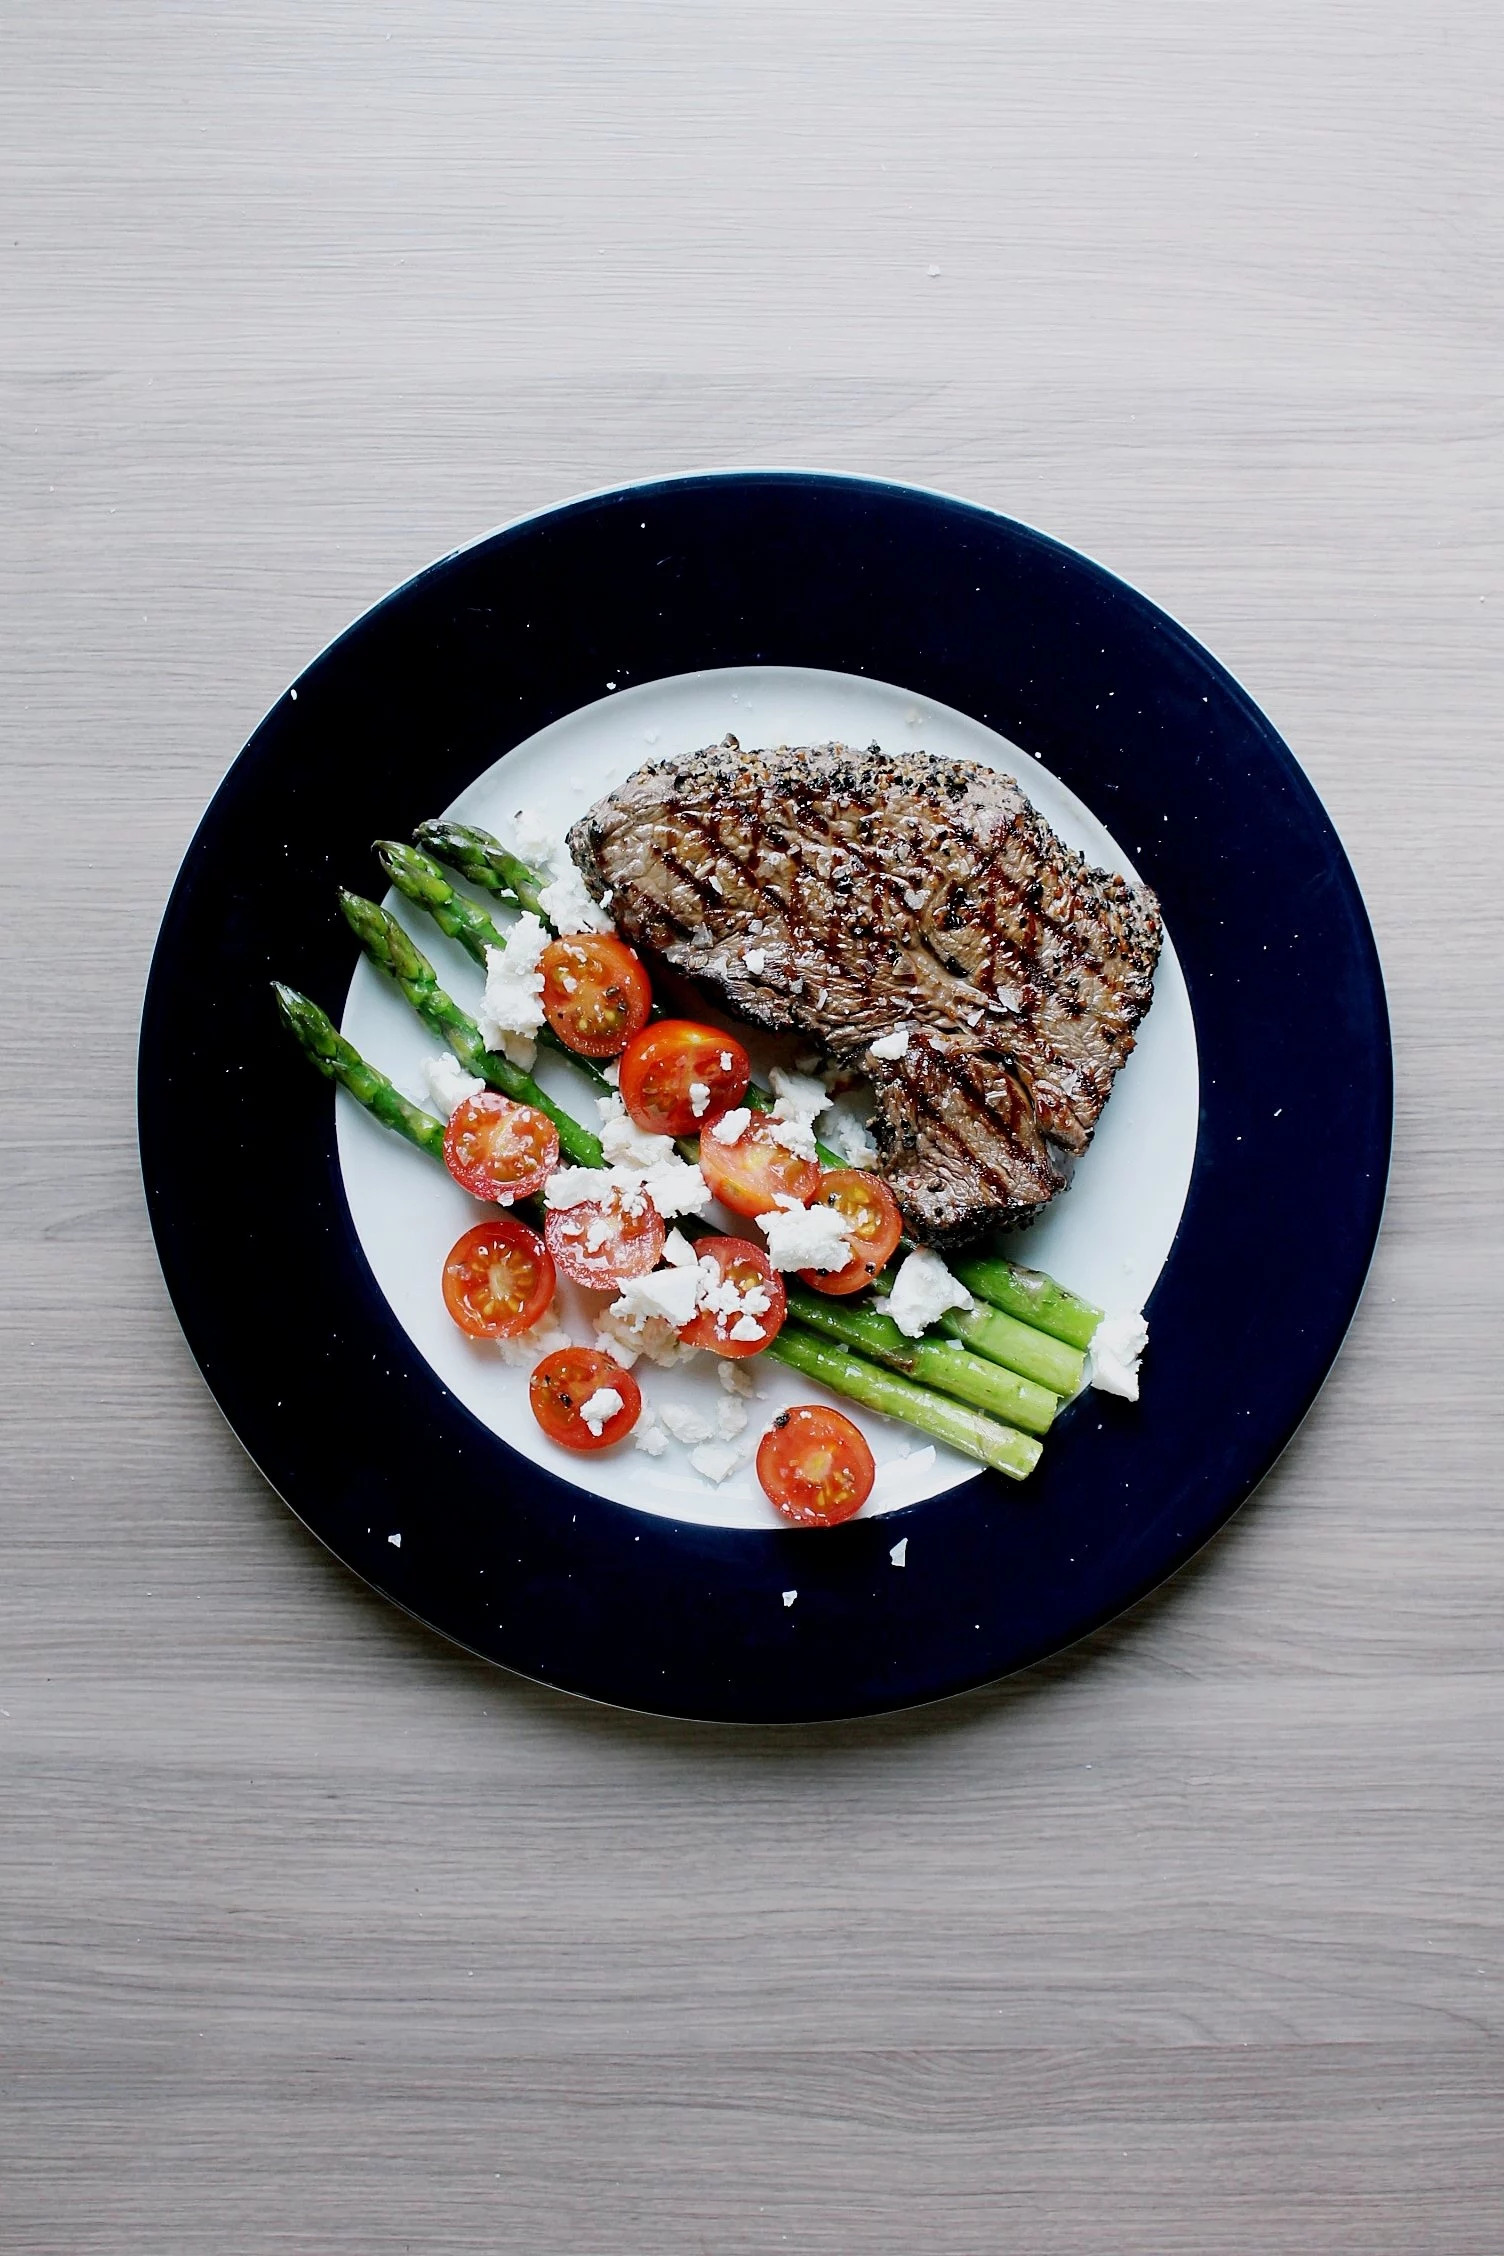 Pepper Steak with Asparagus, Cherry Tomato & Feta Cheese Salad